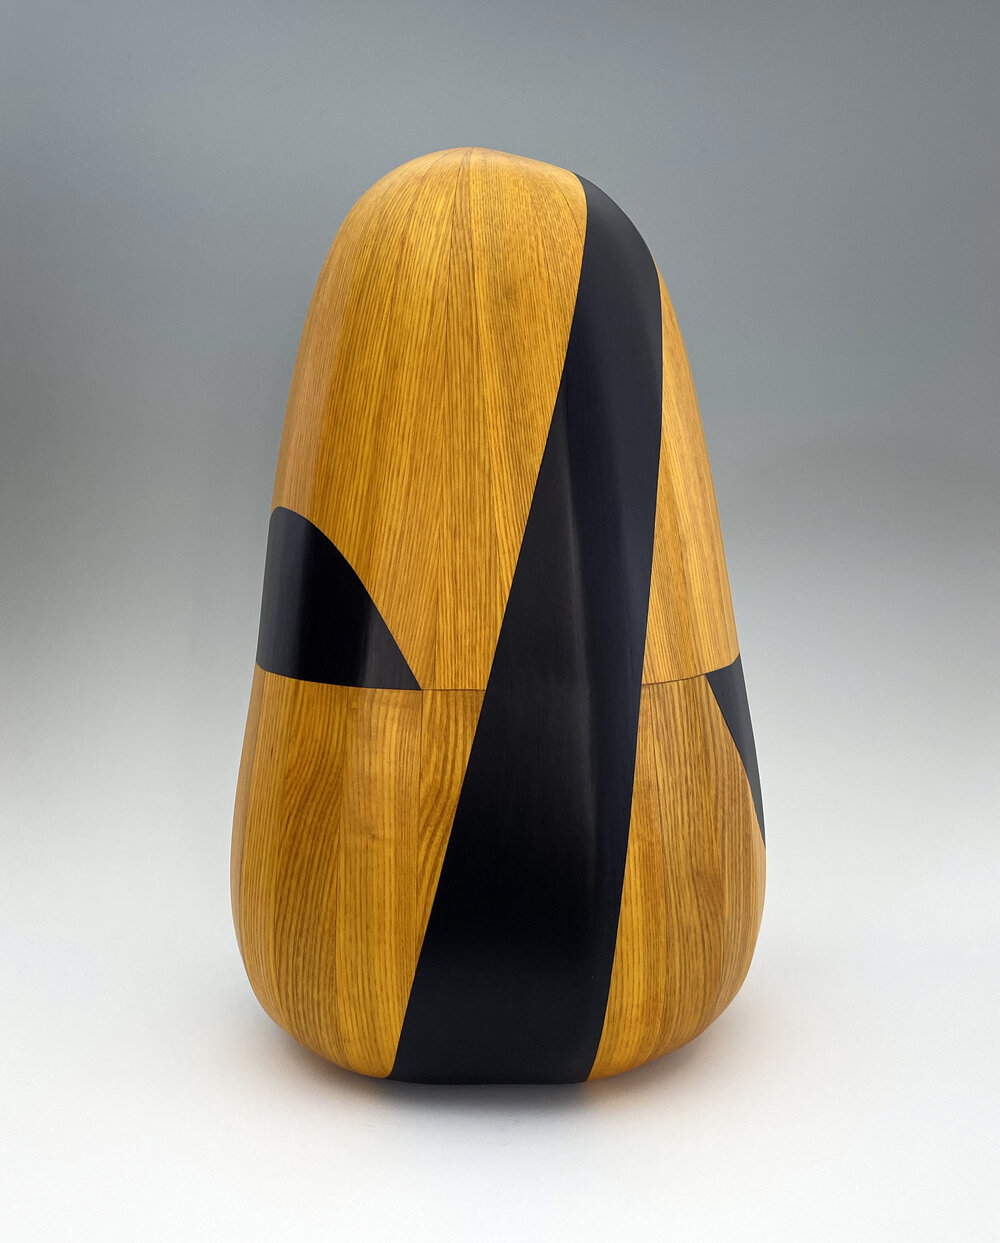 The Resolution, 2018  17 x 11 x 10 inches  wood, stain, paint